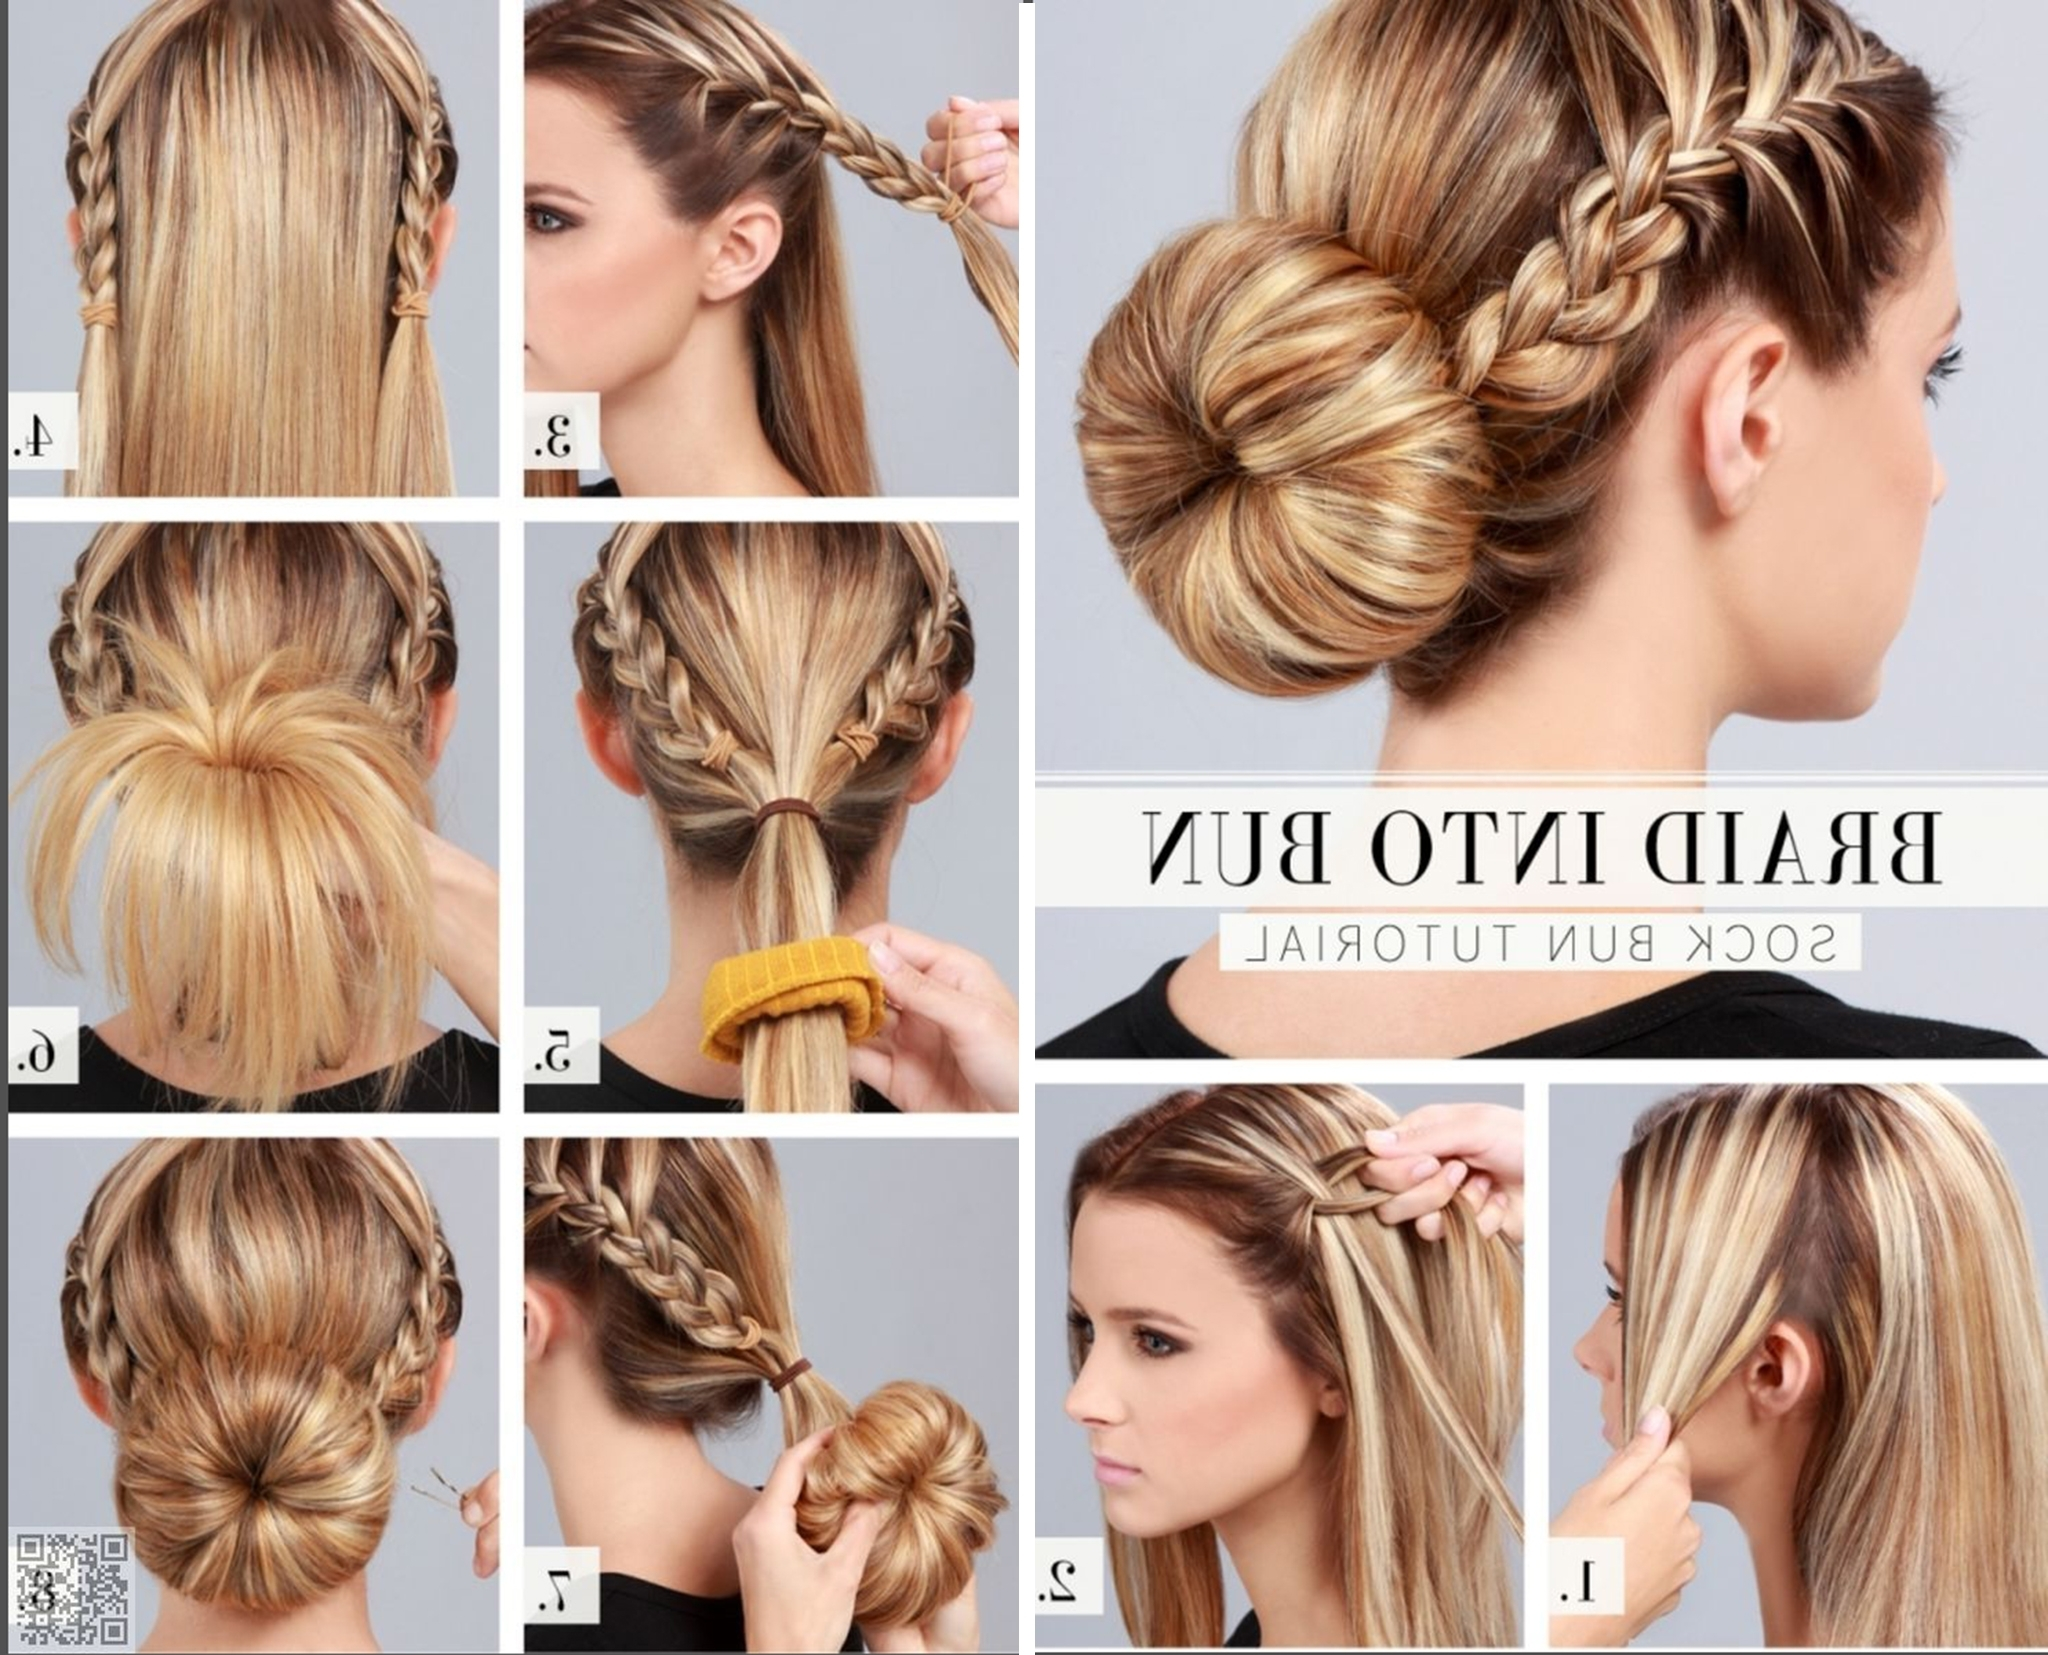 Famous Braided Hairstyles Into A Bun In 5 Super Chic Bun Hairstyle Tutorials (View 7 of 15)